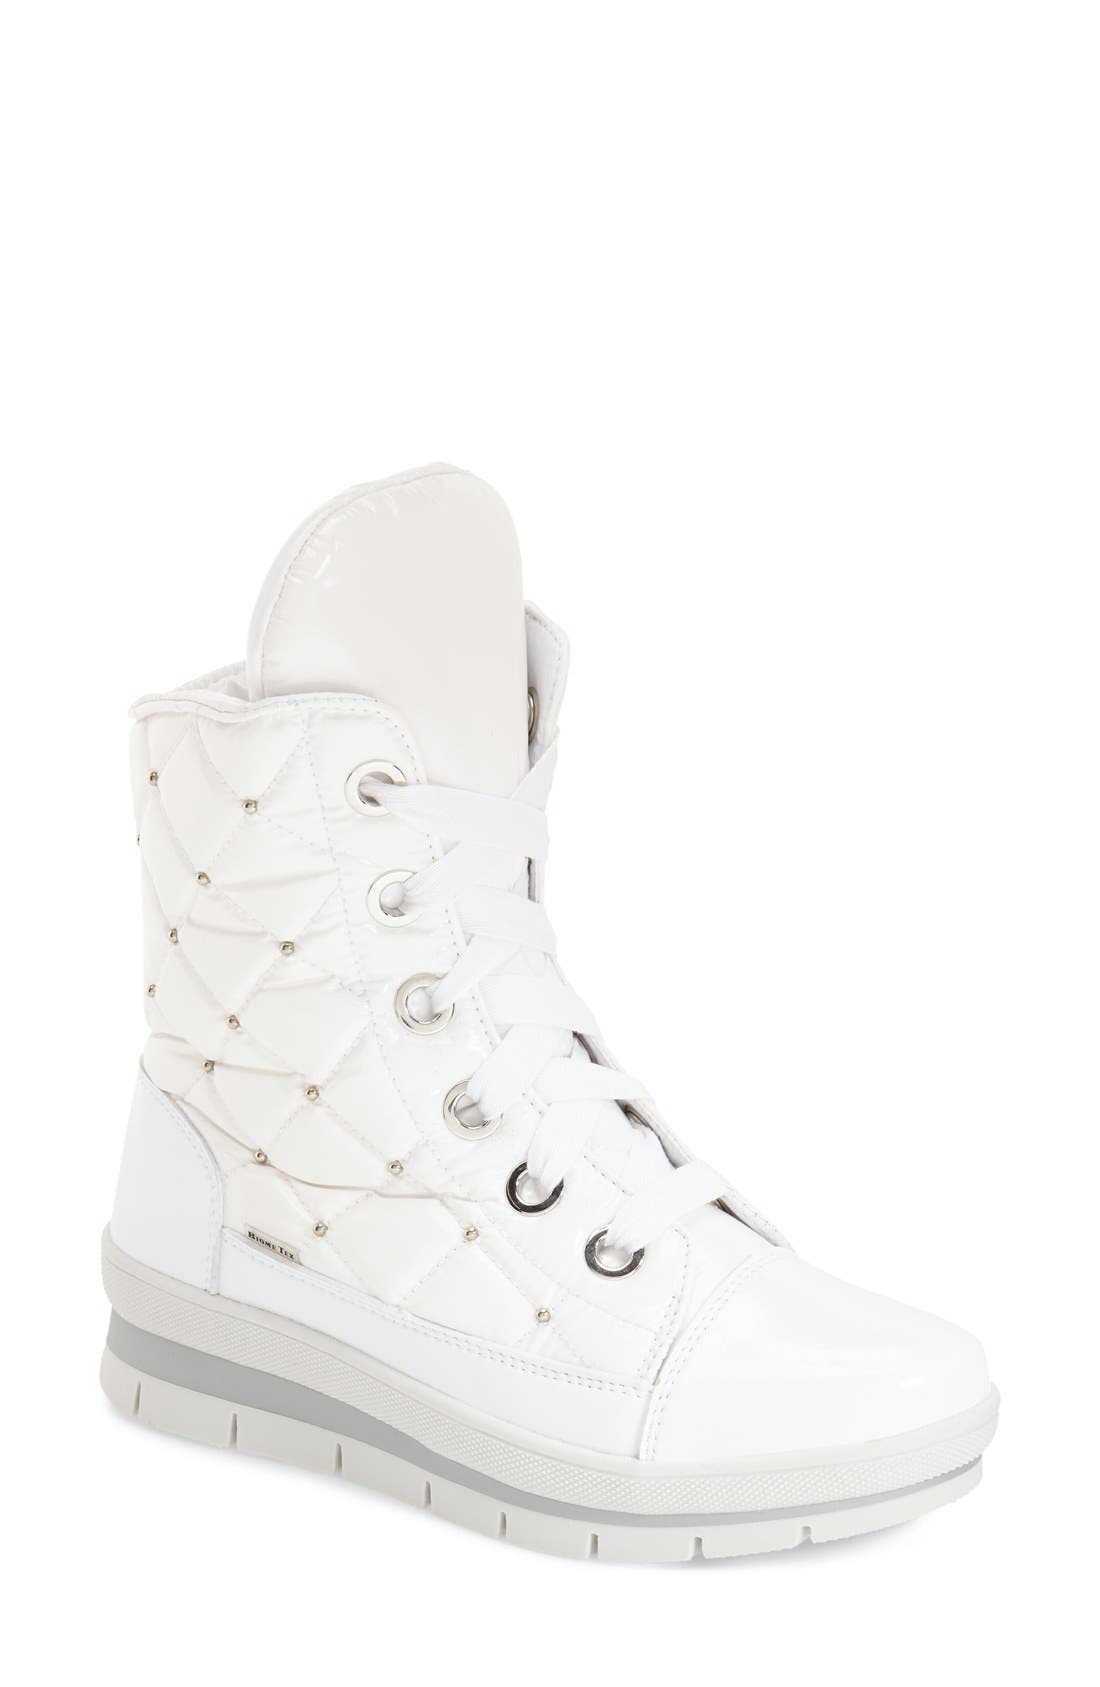 Main Image - JOG DOG Waterproof Quilted Lace-Up Boot (Women)